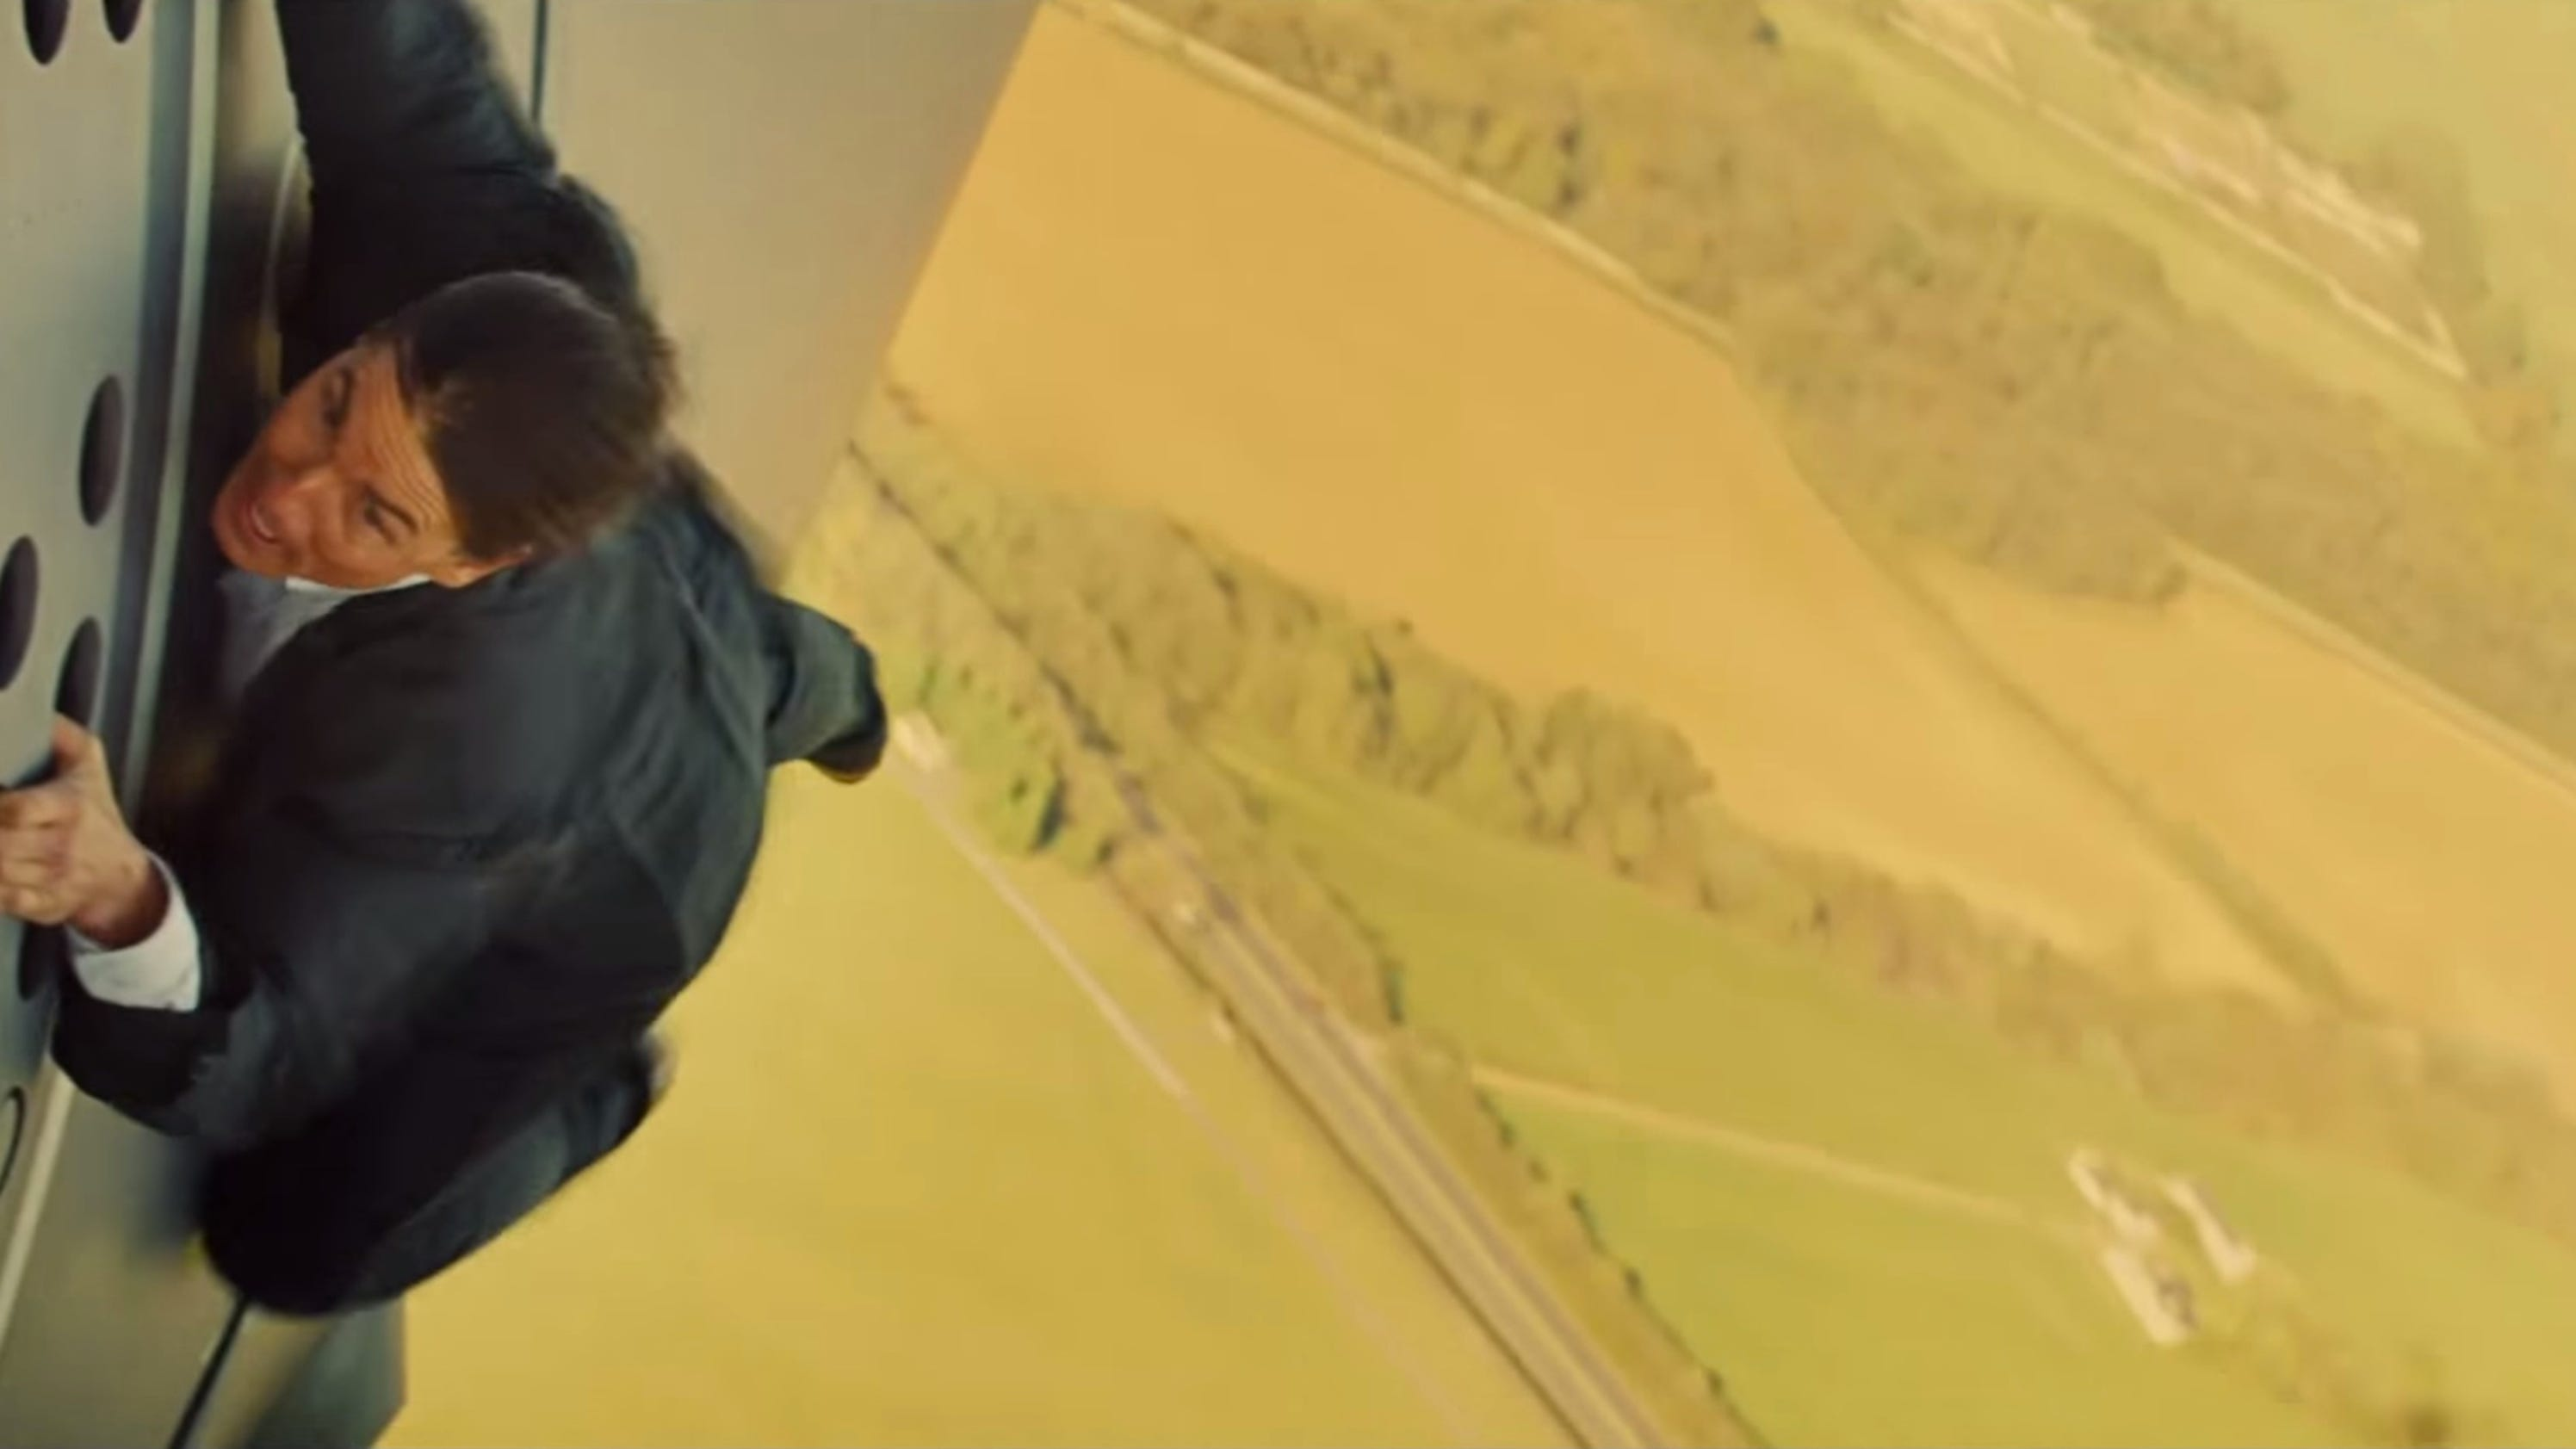 Tomcruisescaredshetlessmissionimpossibleplanestunt - Behind the scenes of the insane plane stunt in mission impossible rogue nation